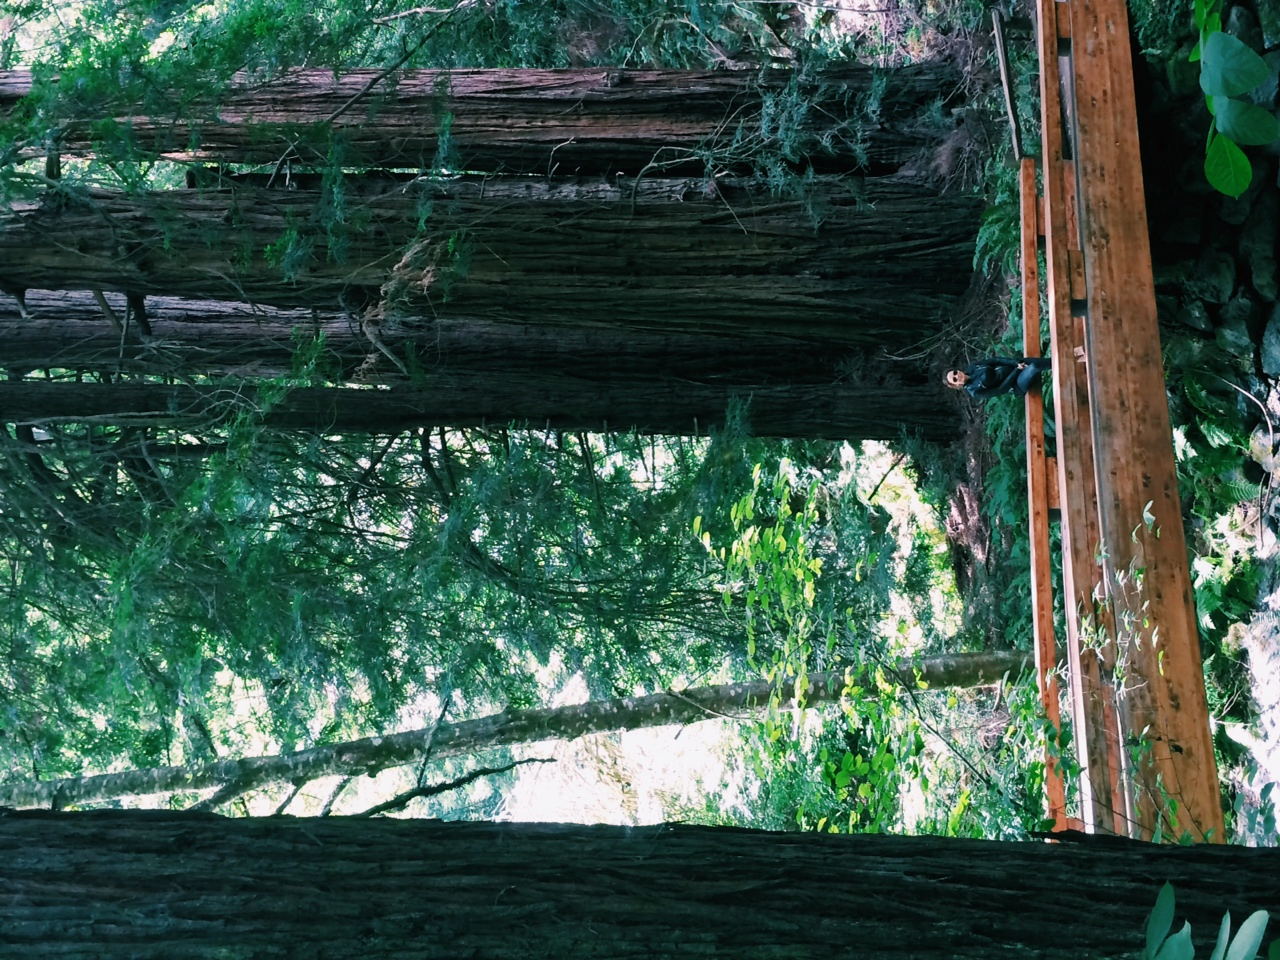 First stop: Muir Woods to see the magnificent red woods forest.